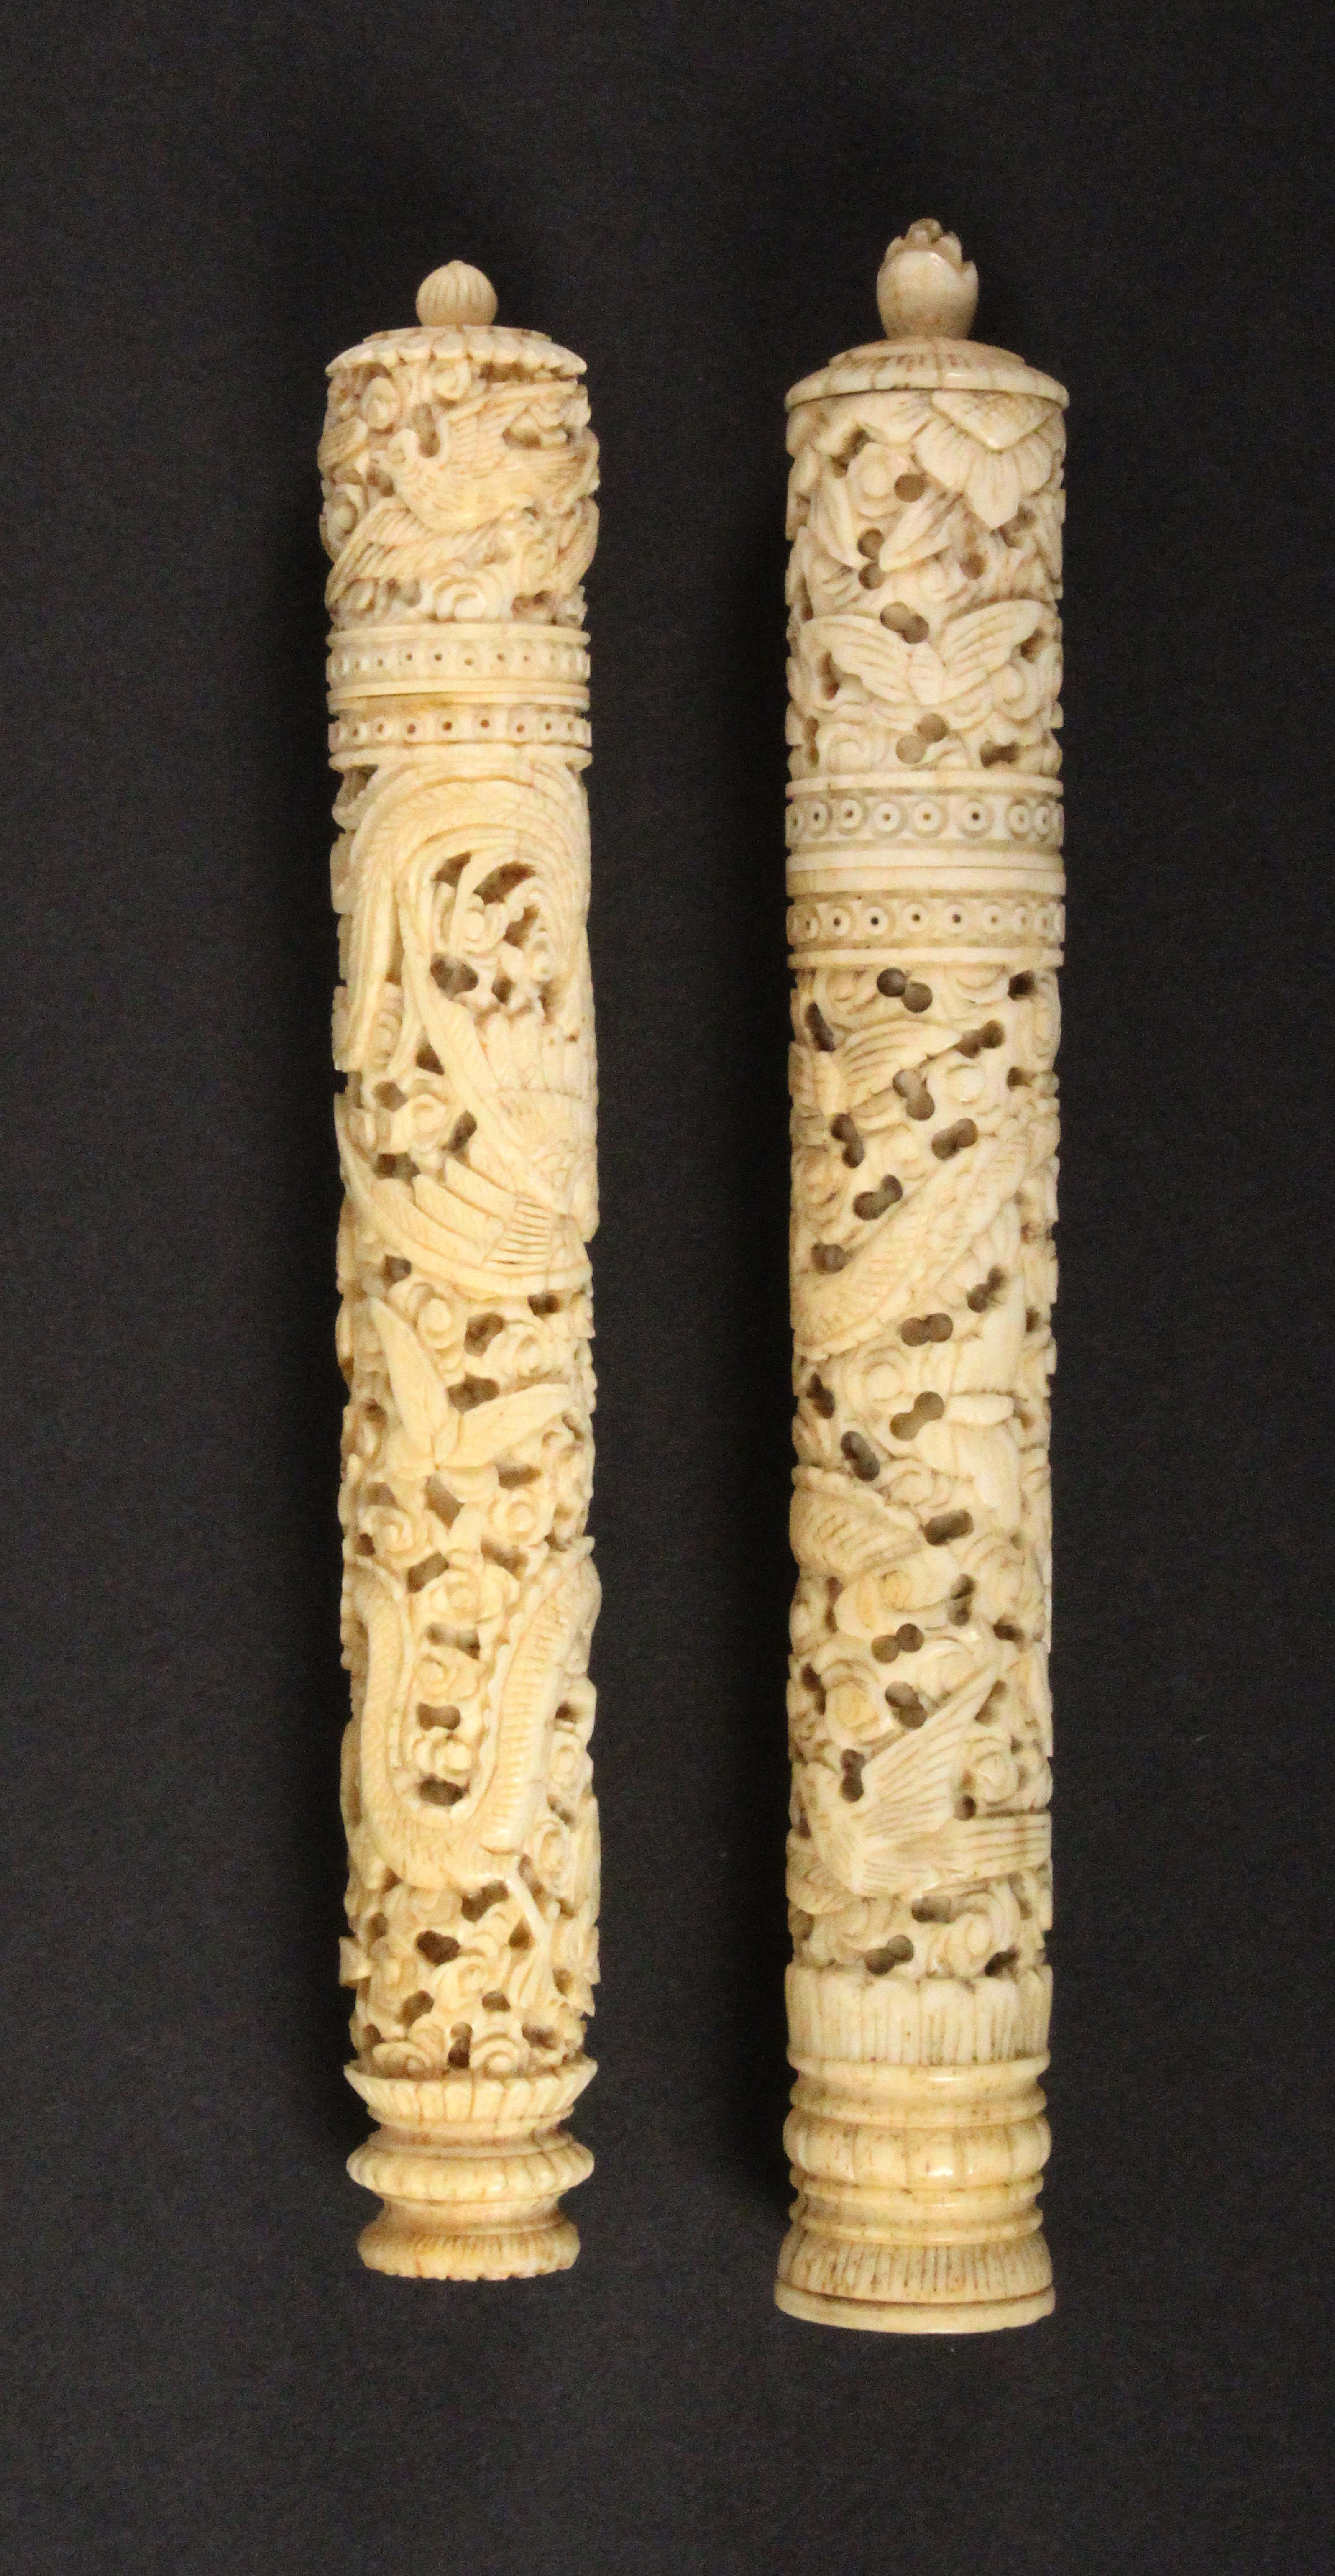 Two Chinese 19th Century ivory netting cases, complete with tools each of tapering cylinder form and - Image 2 of 2